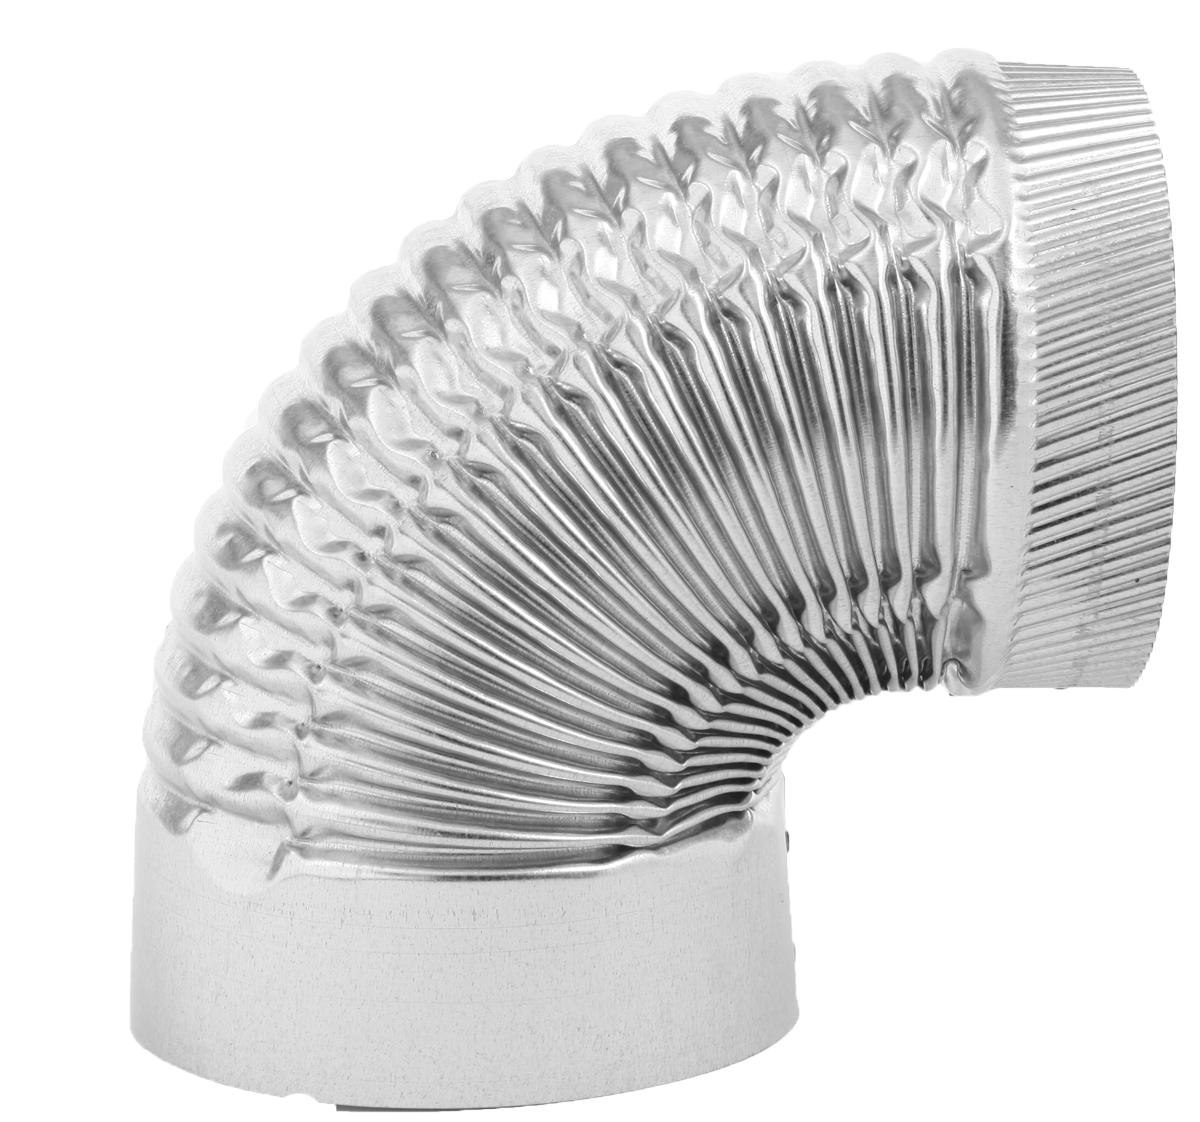 Imperial GV0326 1-Piece Corrugated Stove Pipe Elbow, 6 in